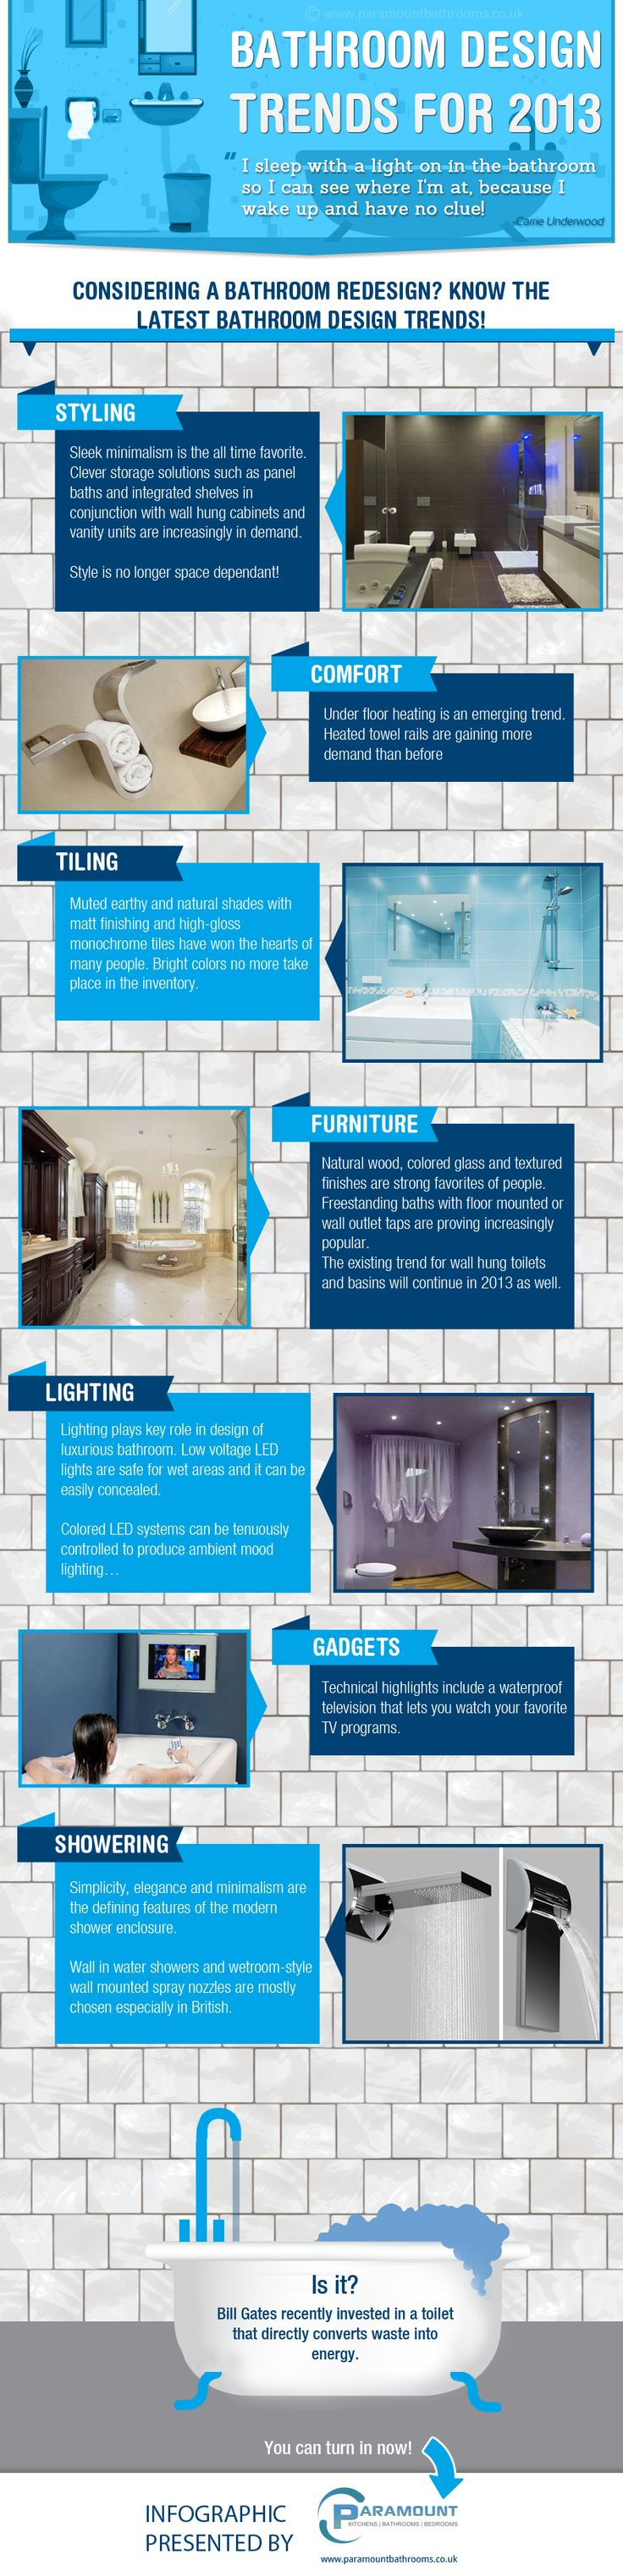 An Infographics on 2013's latest bathroom trends - The infographics below is presented by http://www.paramountbathrooms.co.uk/acatalog/Bathroom_Furniture.html that reveals the 2013's latest bathroom design trends. Paramount specialises in the manufacture of high quality bathroom, bedroom and kitchen furniture.